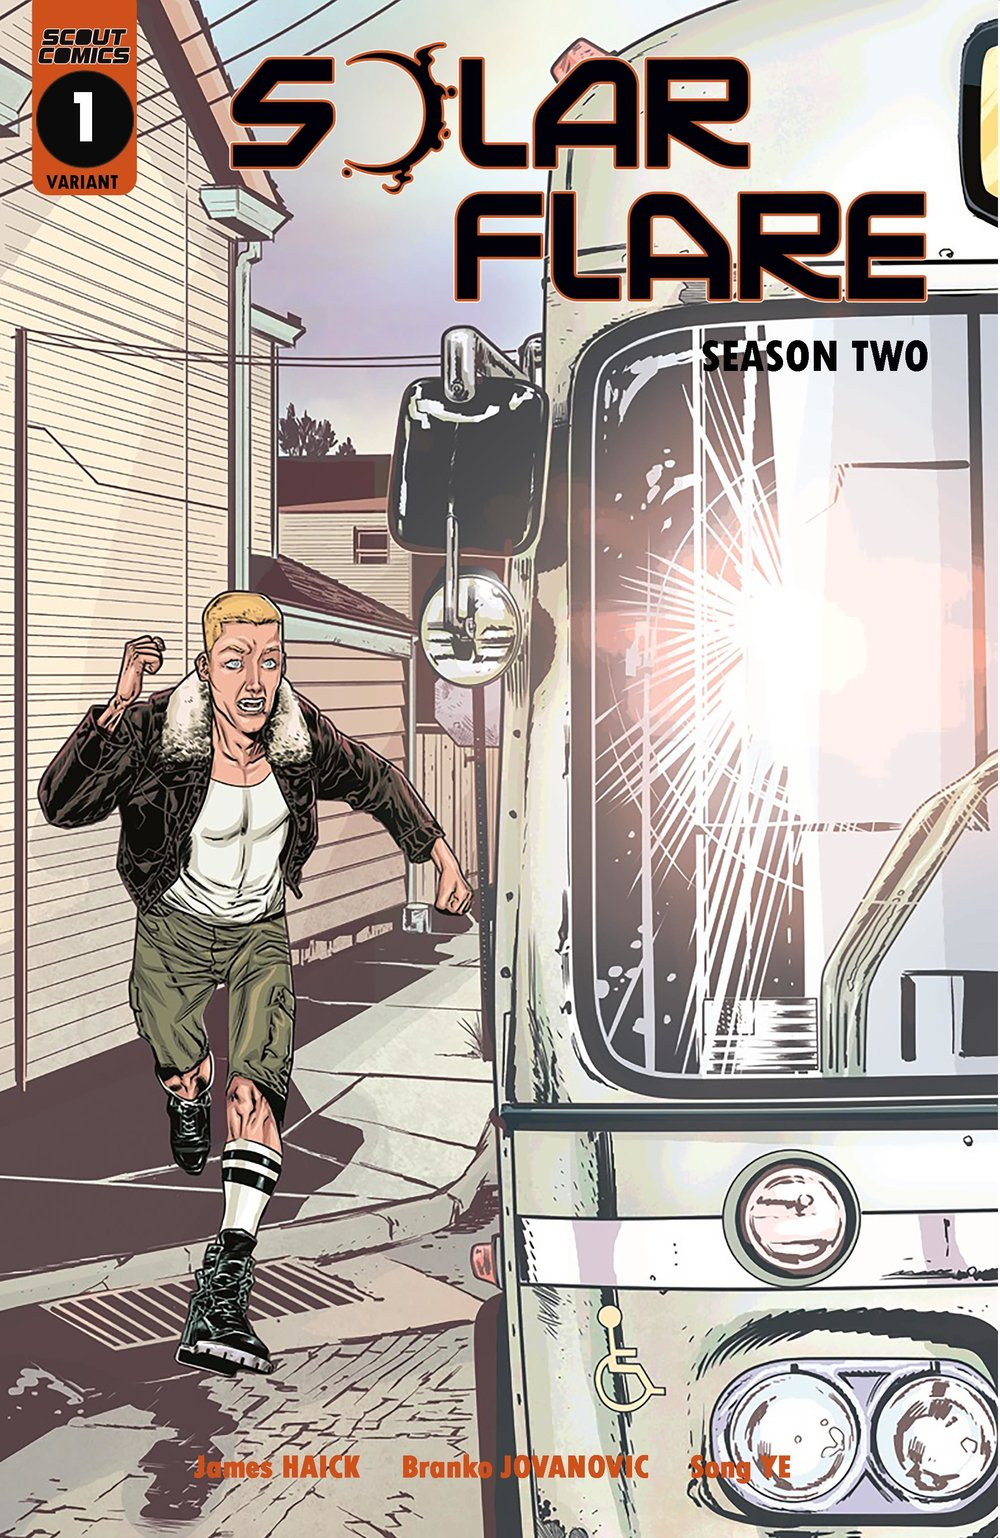 SF Season 2 #1 Variant.jpg